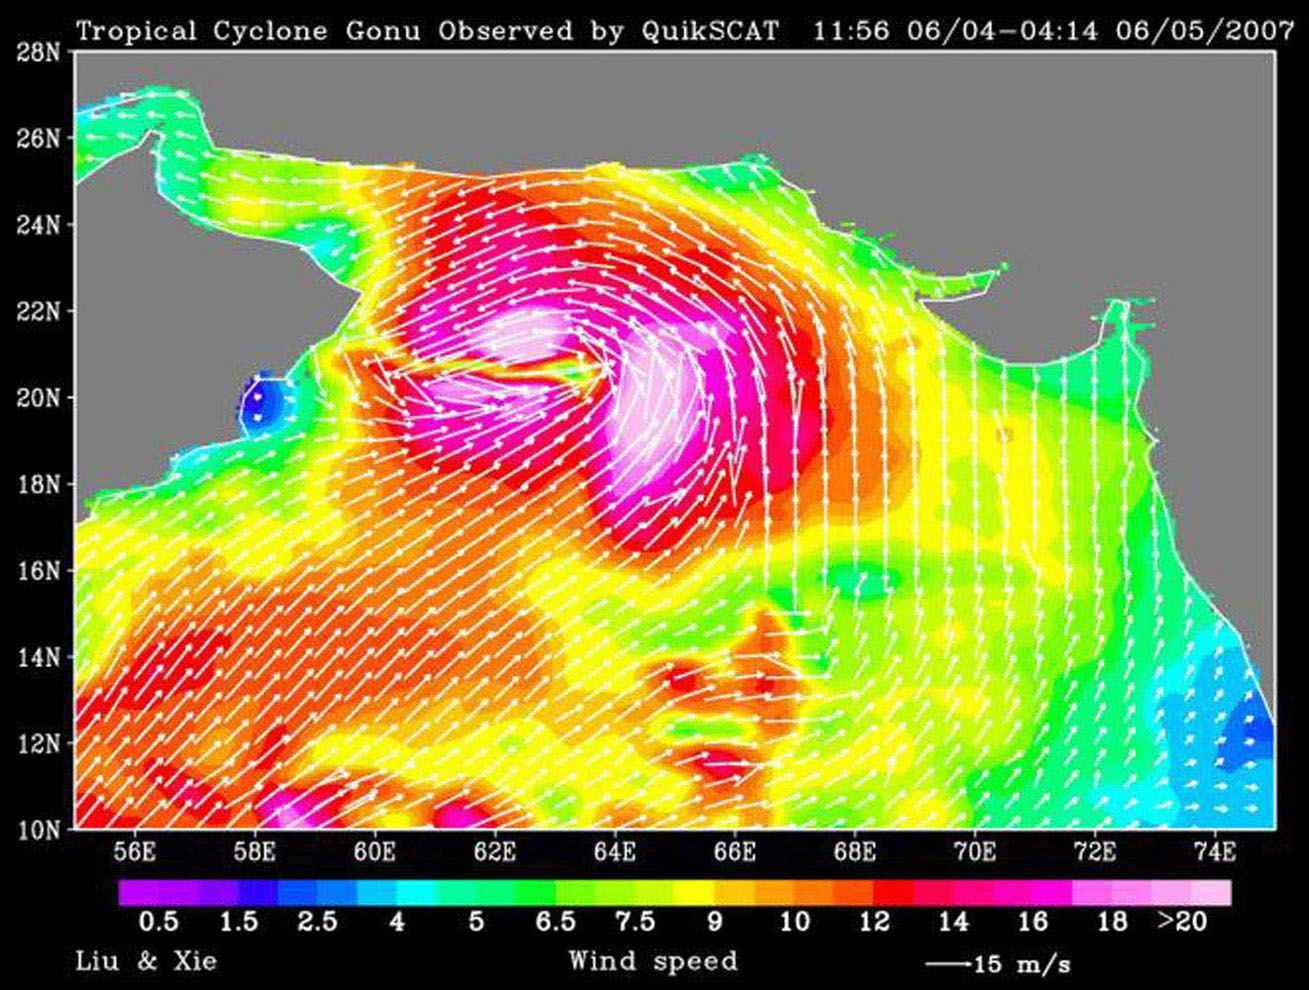 NASA's QuikScat observed a rare tropical cyclone during June, 2007, in the northern part of the Arabian Sea, threatening the petroleum shipping lanes and the Gulf States (e.g. Oman) .